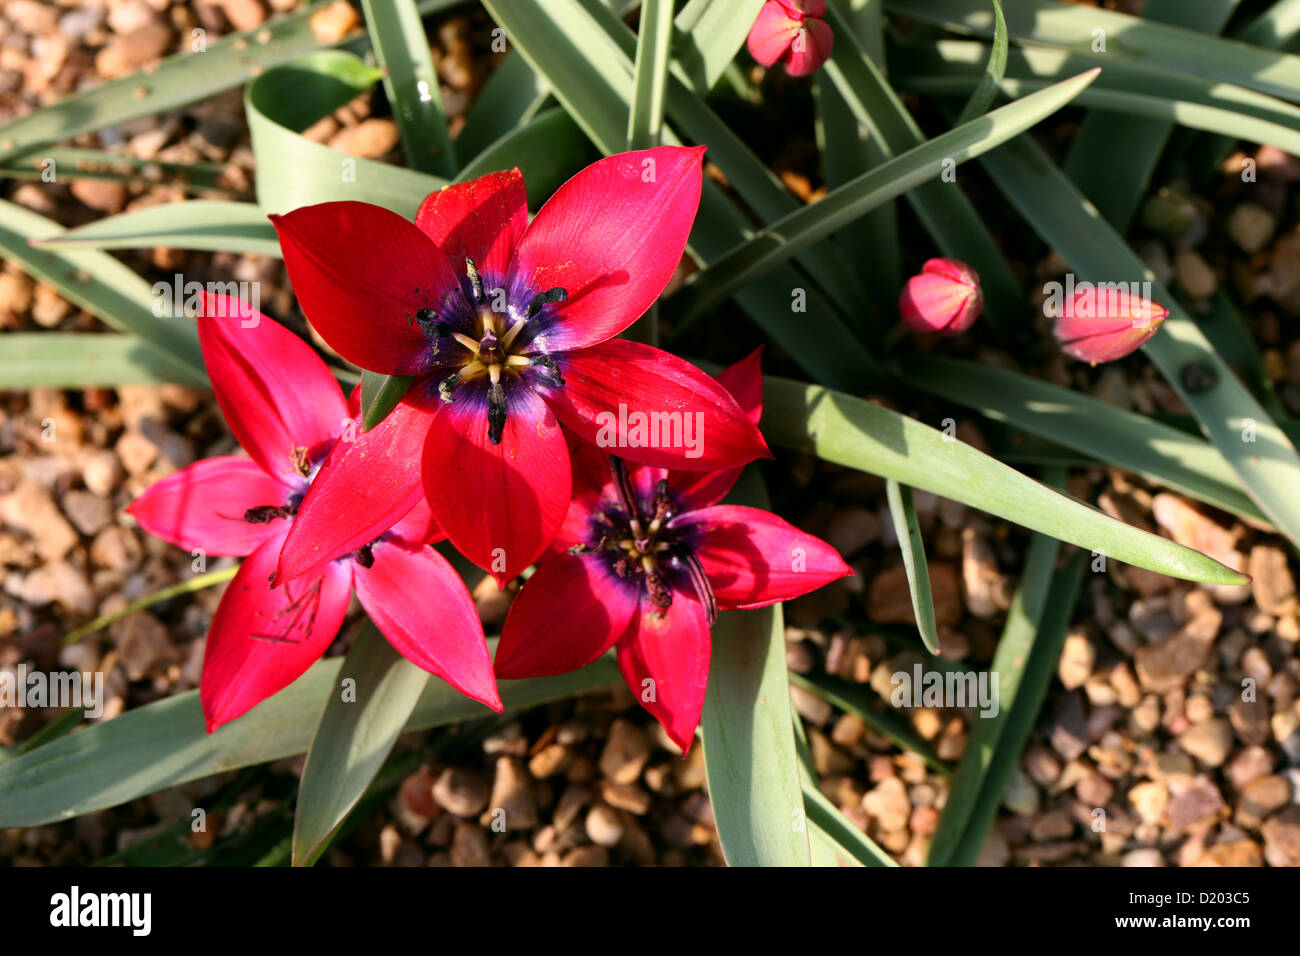 Tulipa humilis 'Alanya', Liliaceae. A Red Tulip from Iran and Turkey - Stock Image